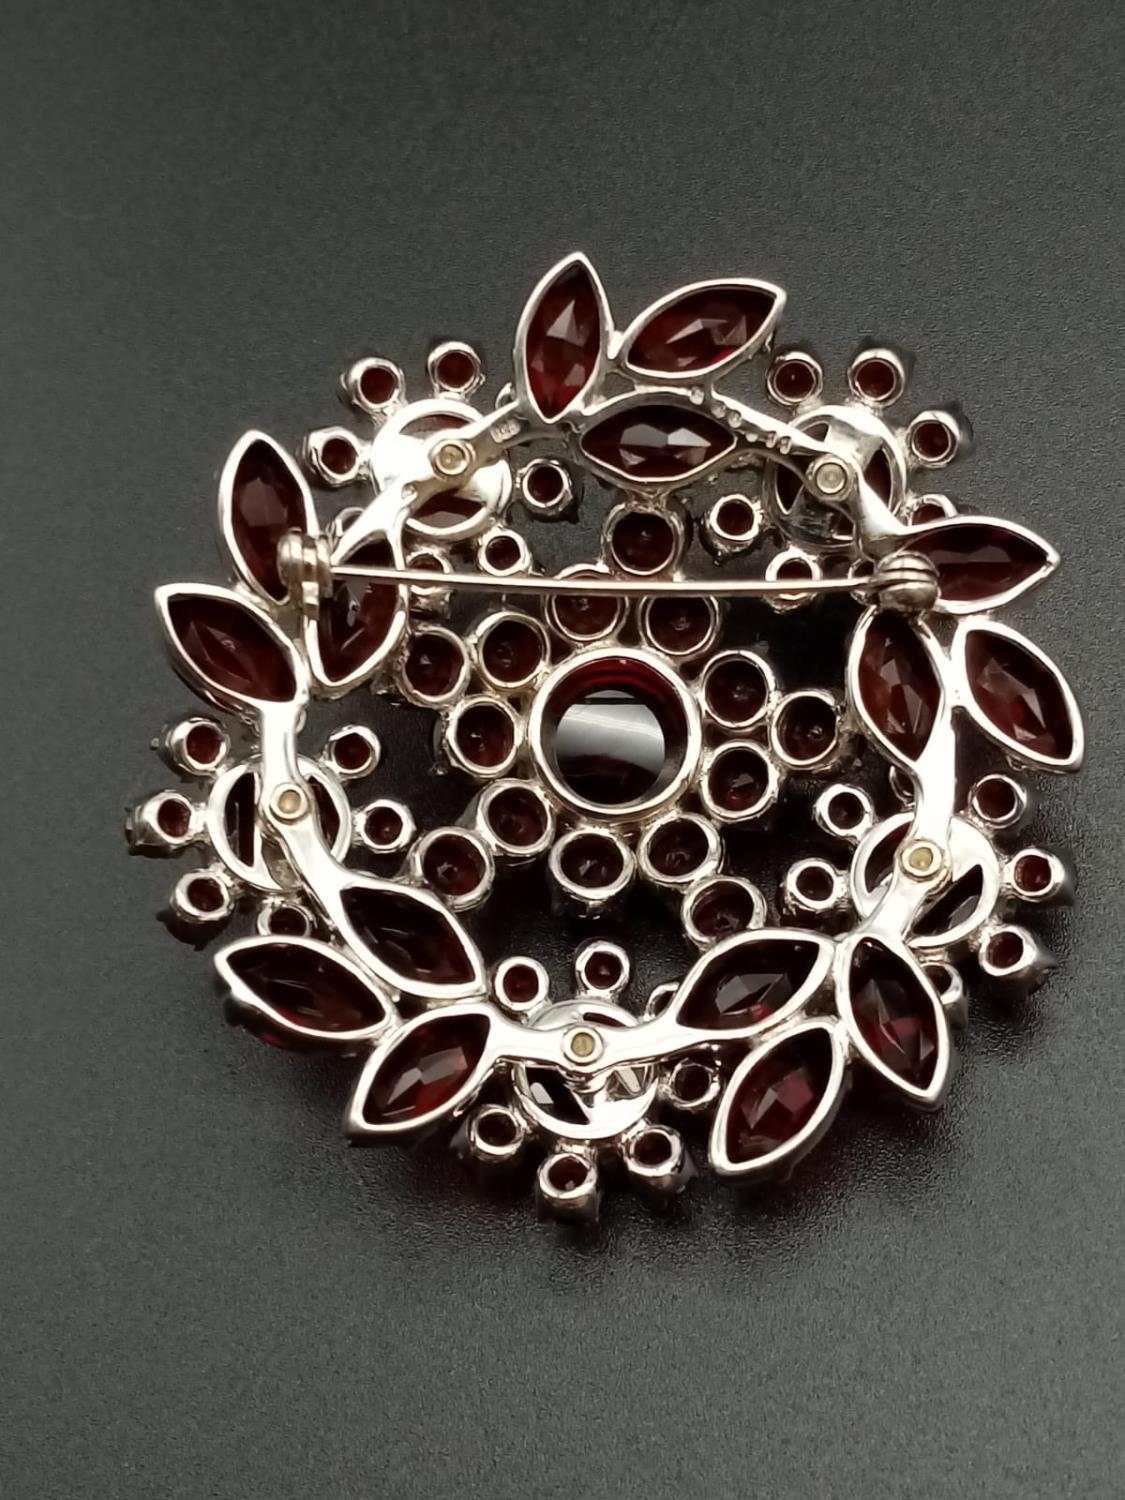 A beautiful sterling silver and garnet brooch (diameter: 46mm) weight: 26.2g - Image 7 of 7